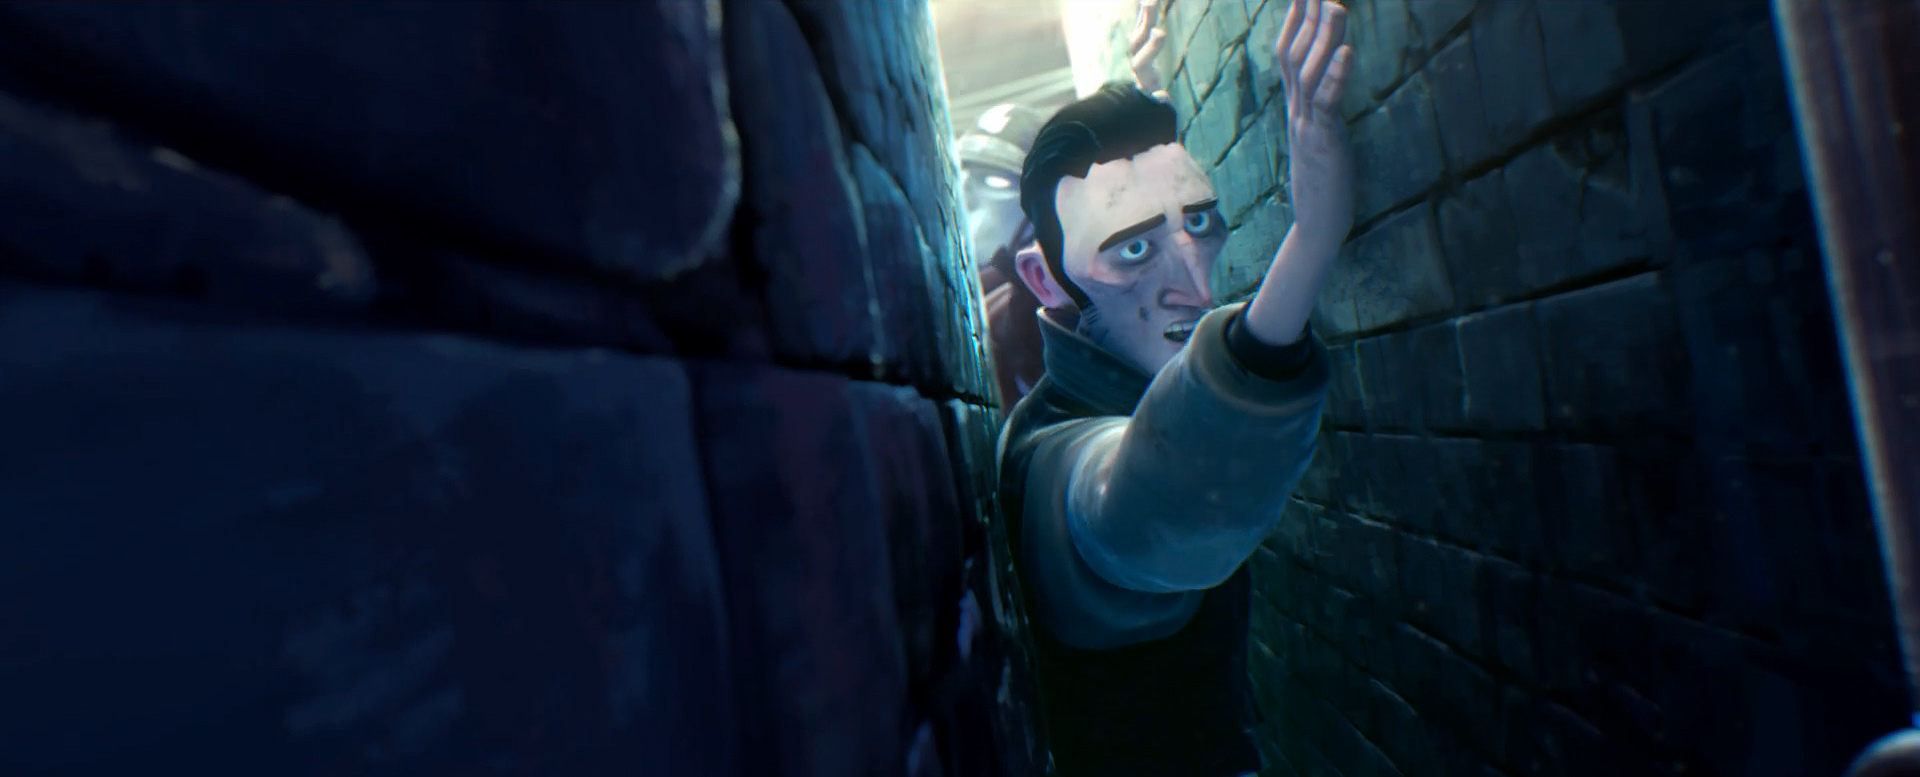 animated-action-short-walter-the-gathering-5.jpg